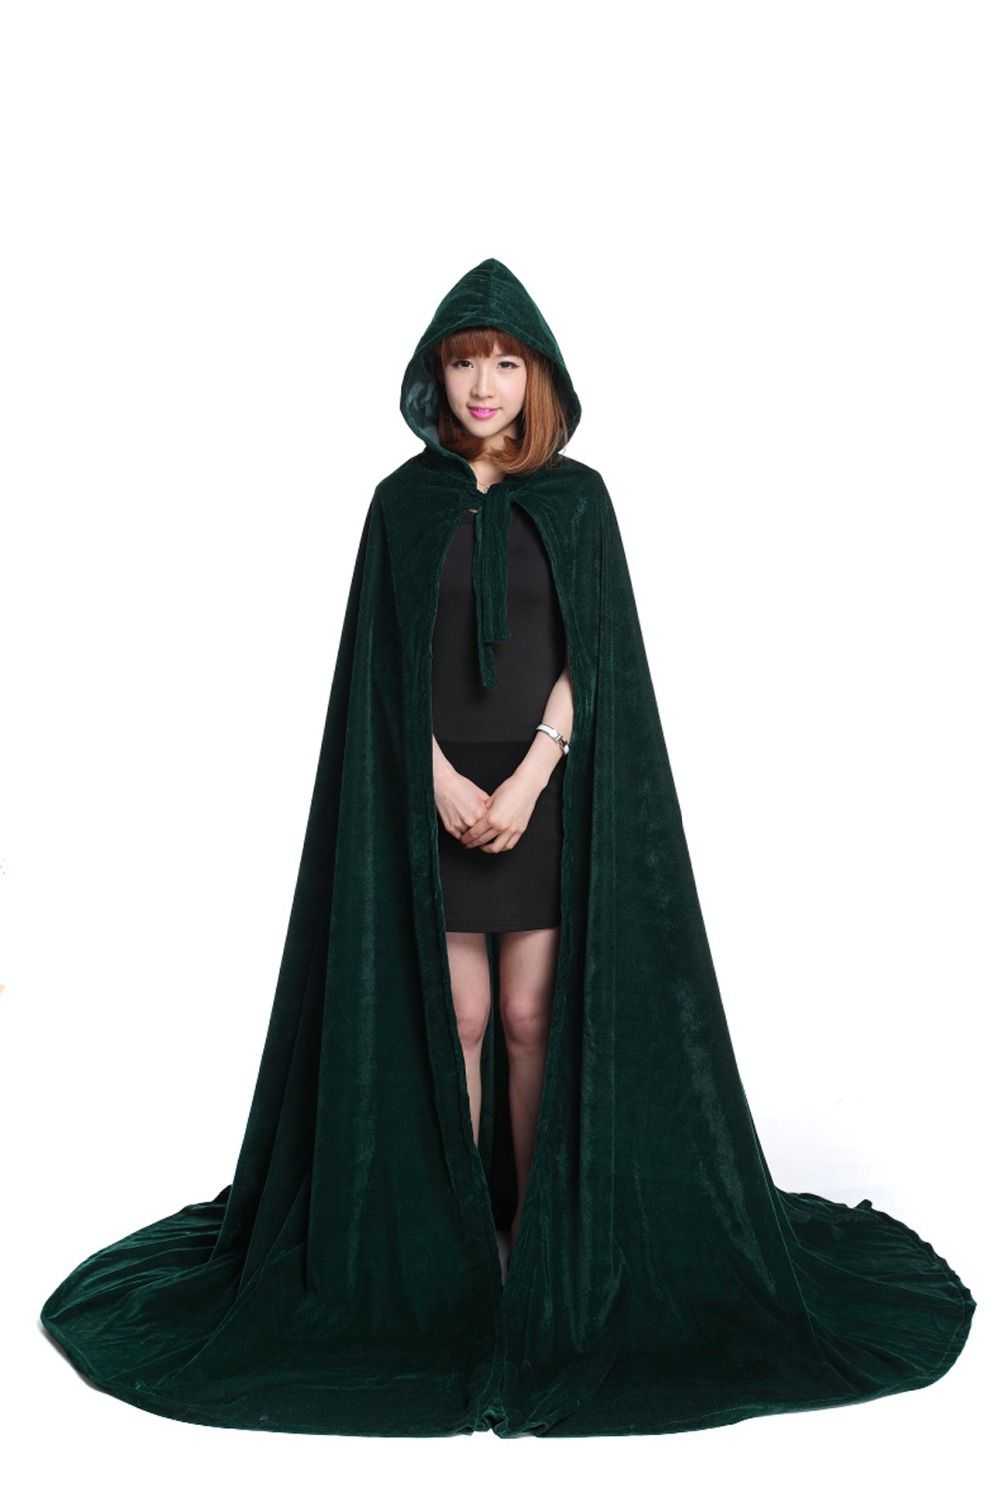 cosplay cloak free shipping new green velvet hooded vampire cape halloween party cloak halloween costumes witchcraft - Halloween Costumes With A Cape